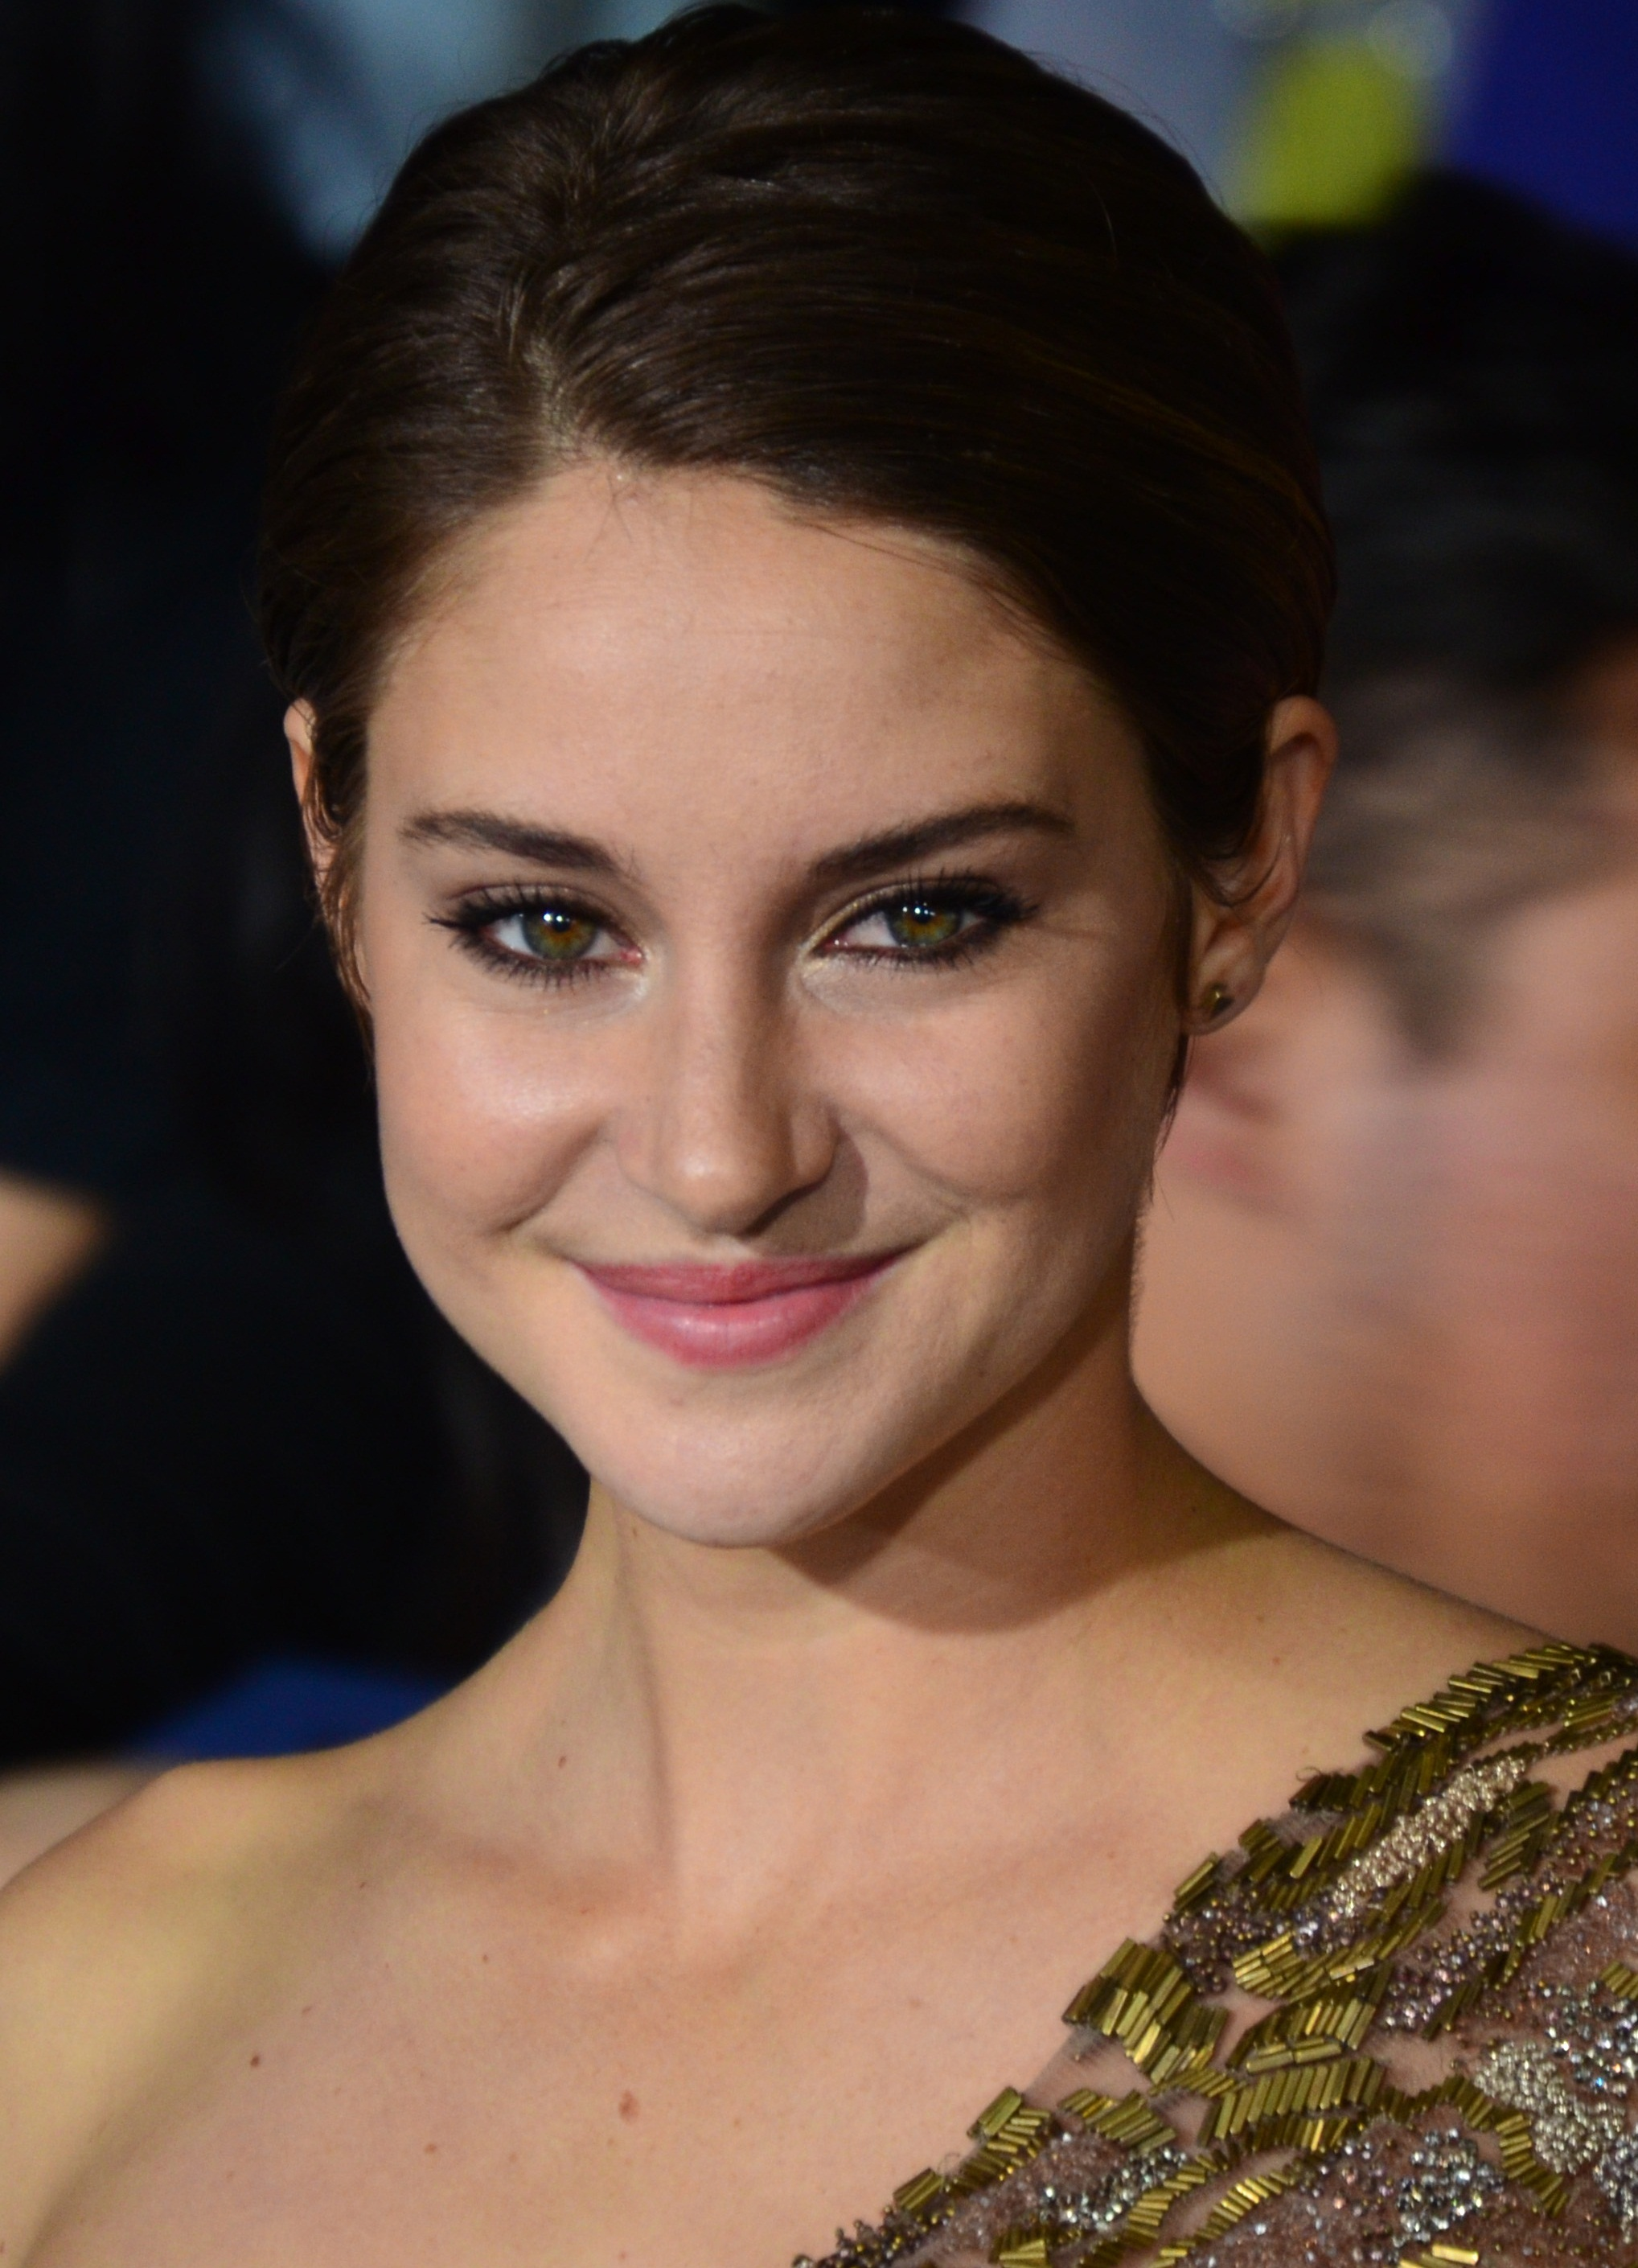 Shailene_Woodley_March_18,_2014_(cropped)